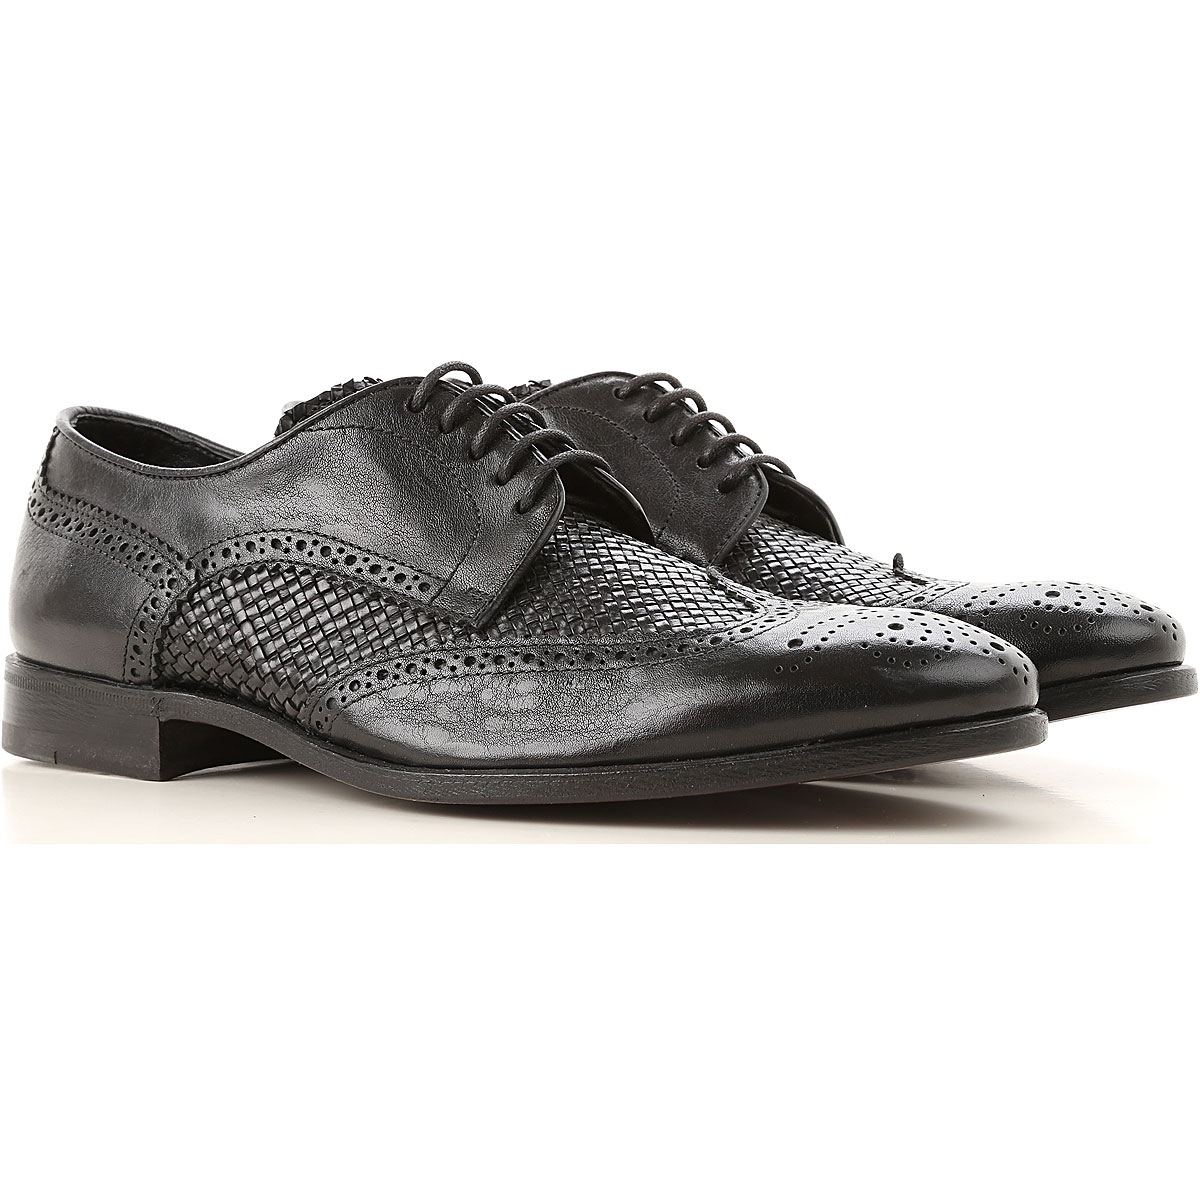 Henderson Lace Up Shoes for Men Oxfords, Derbies and Brogues On Sale, Black, Leather, 2019, 10 11 11.5 7 9.5